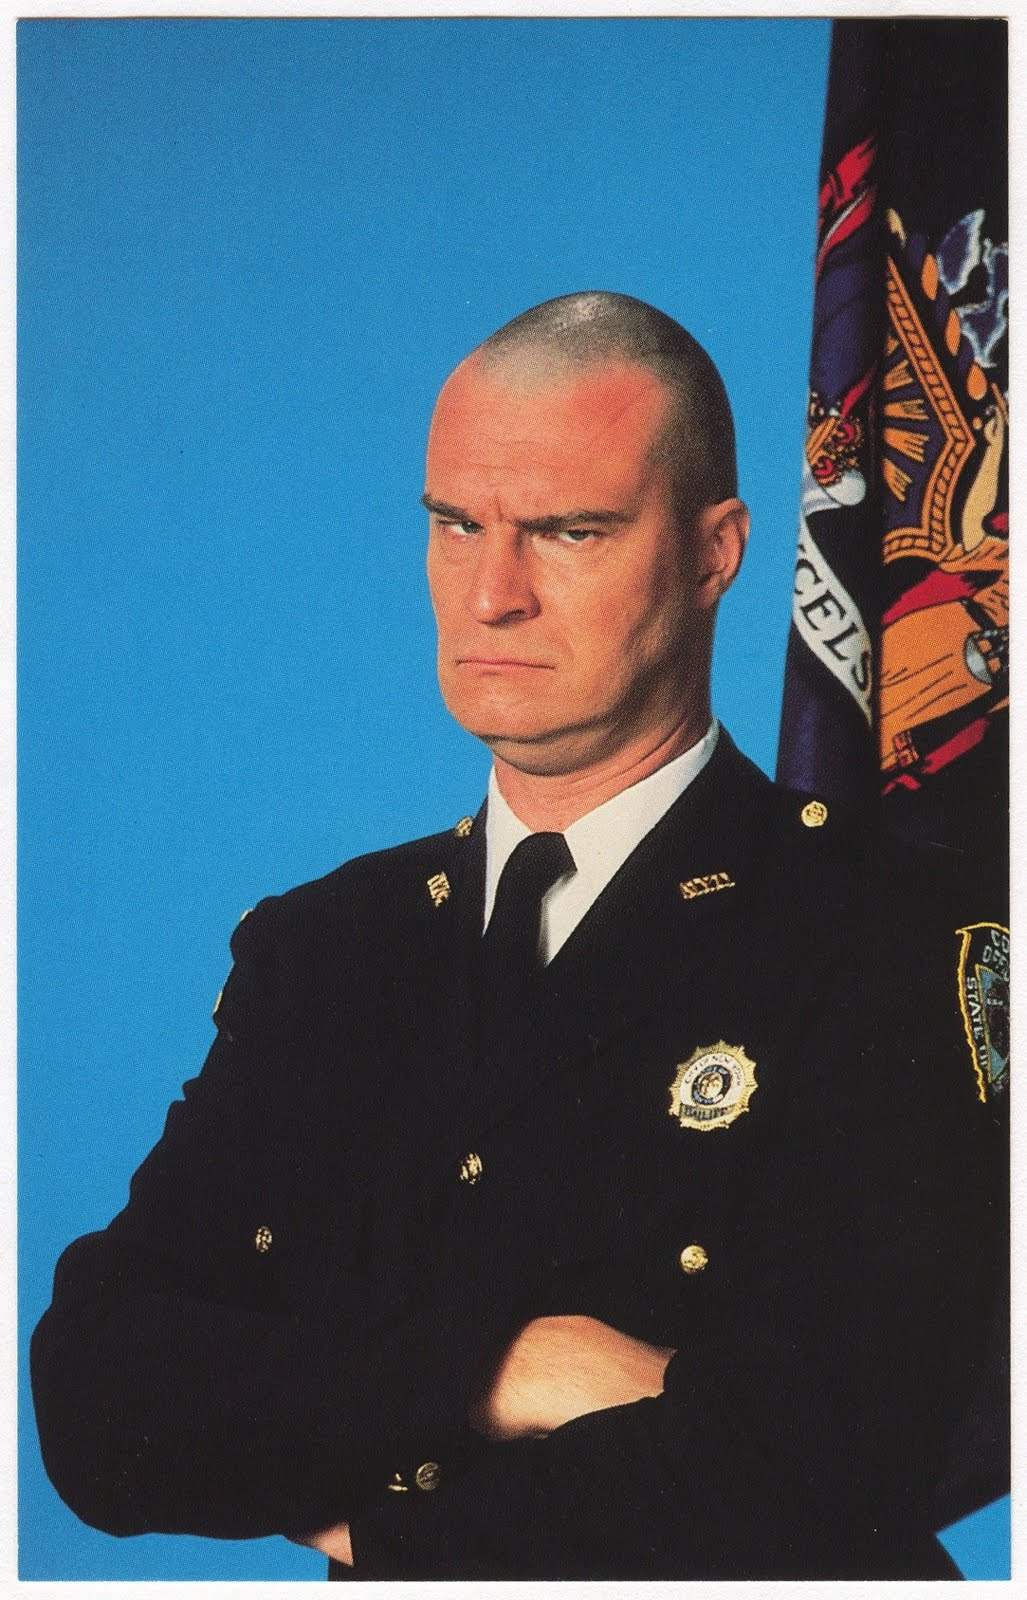 richard moll died